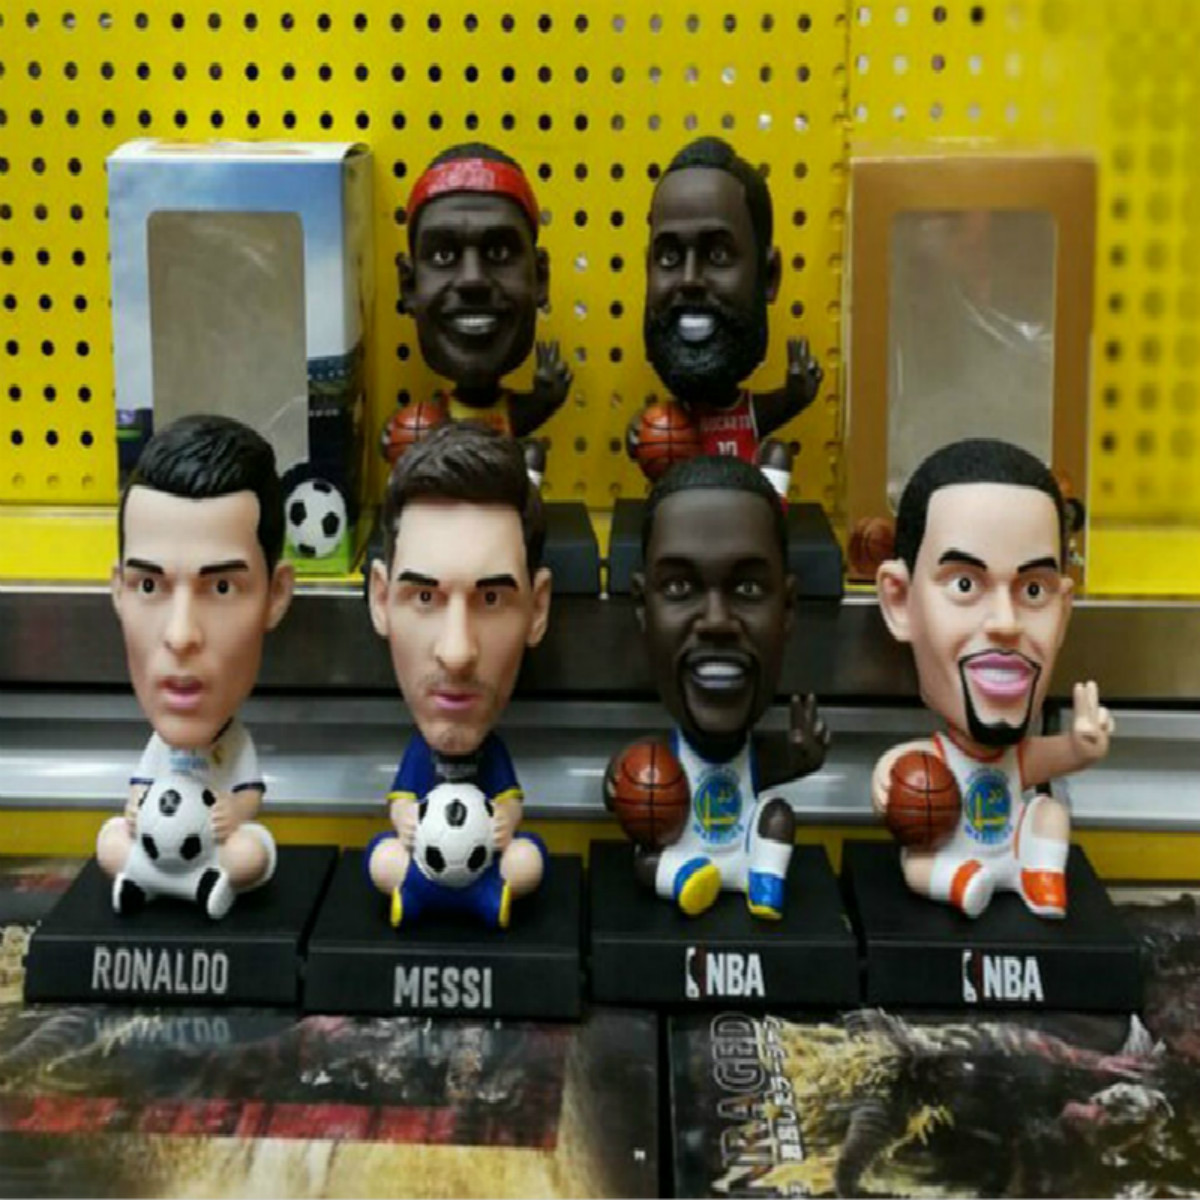 13cm Football/Basketball Stars Ronaldo Messi Curry James Cute Bobble Head Dolls PVC Action Figure Model Toys Car Decoration Gift soccerwe dolls figurine football stars 17 18 7 c ronaldo movable joints resin model toy action figure dolls collectible gift